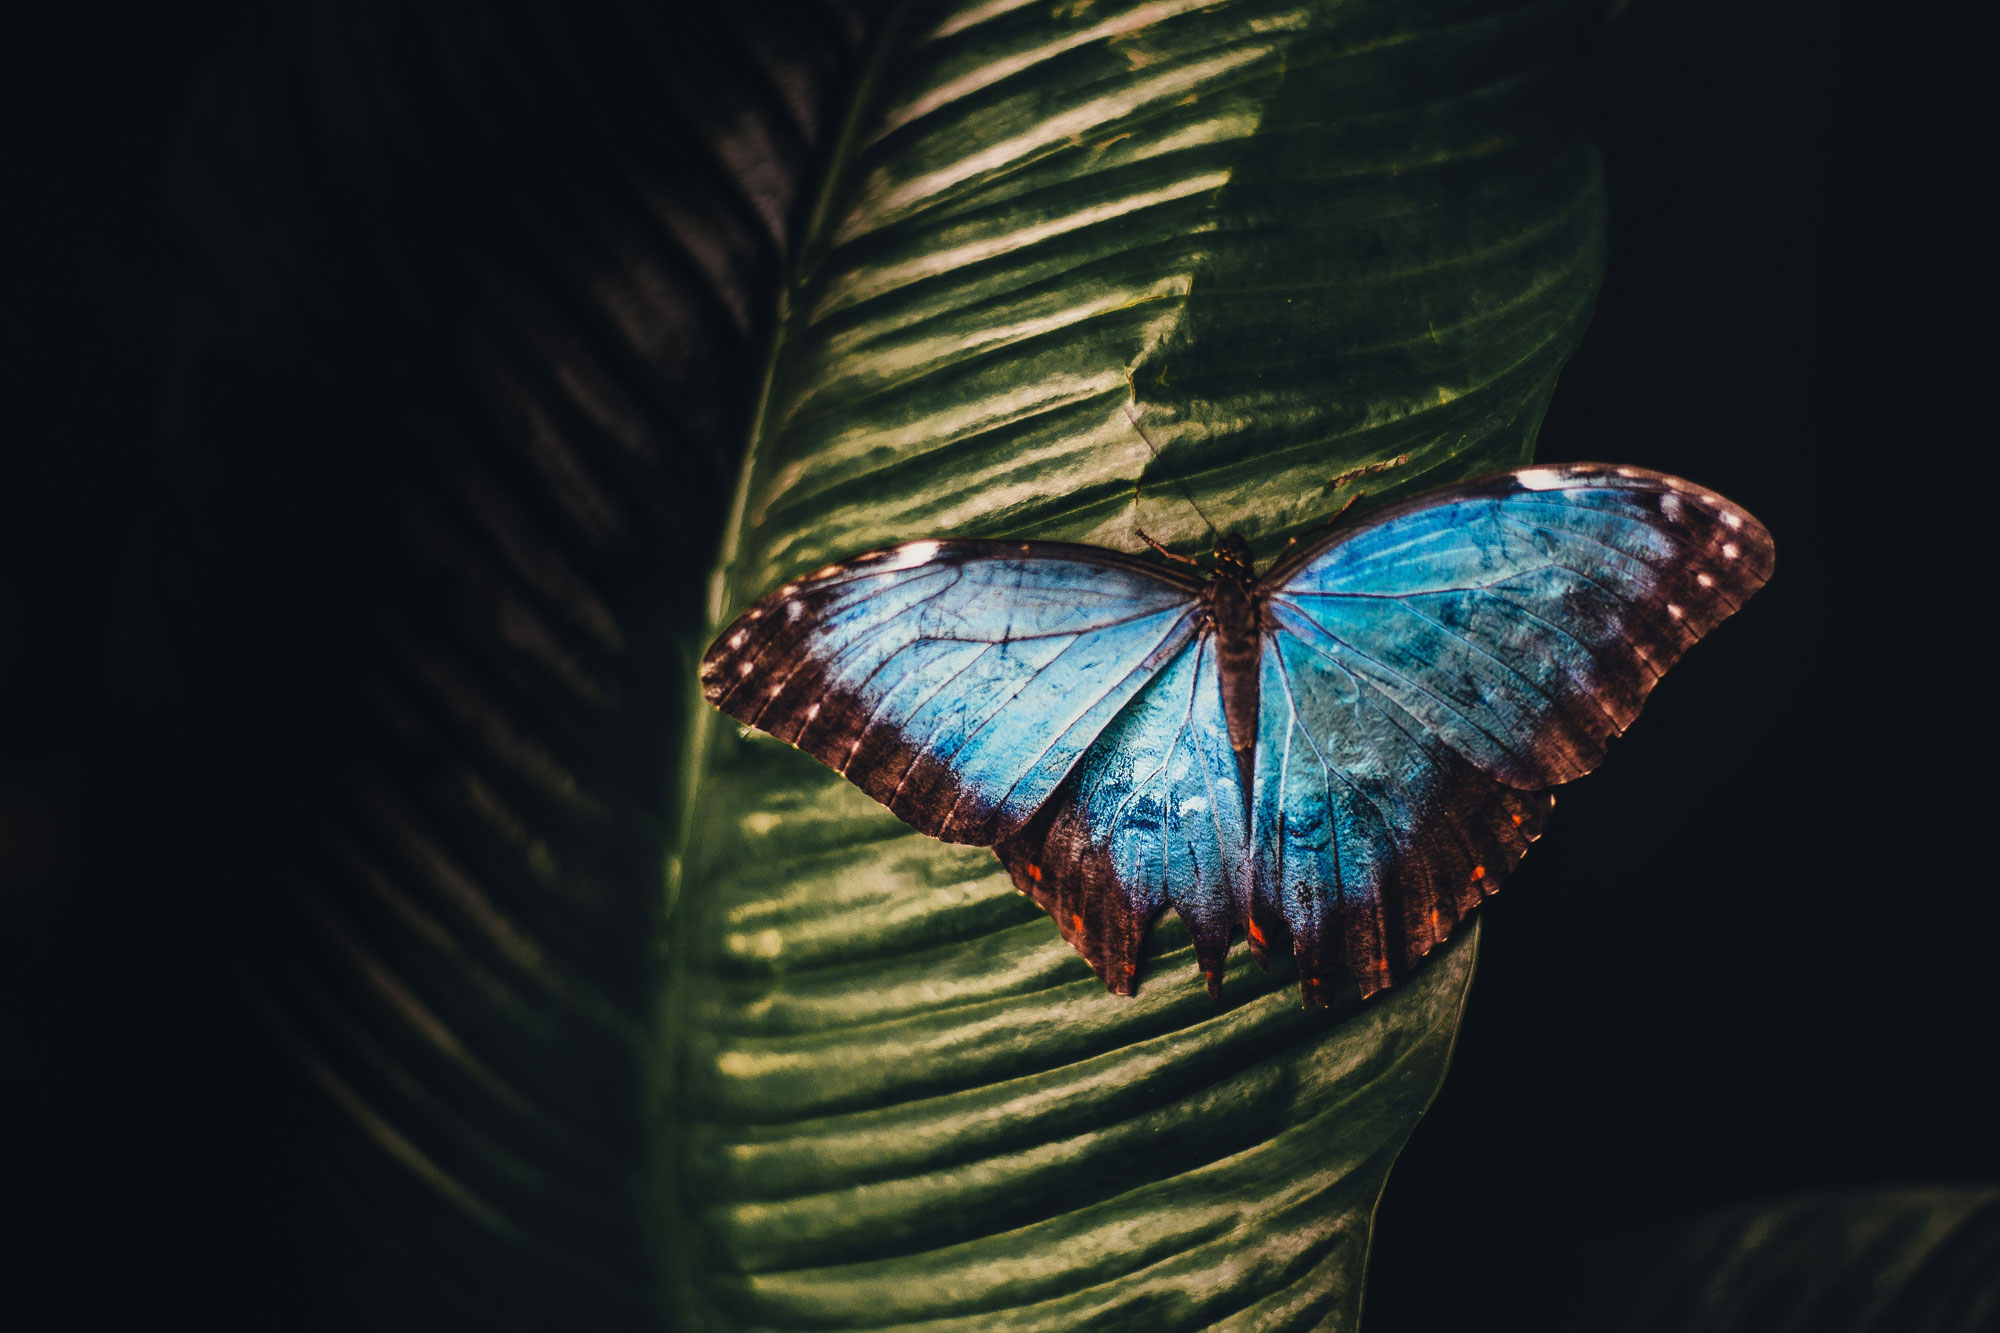 A blue butterfly on a leaf